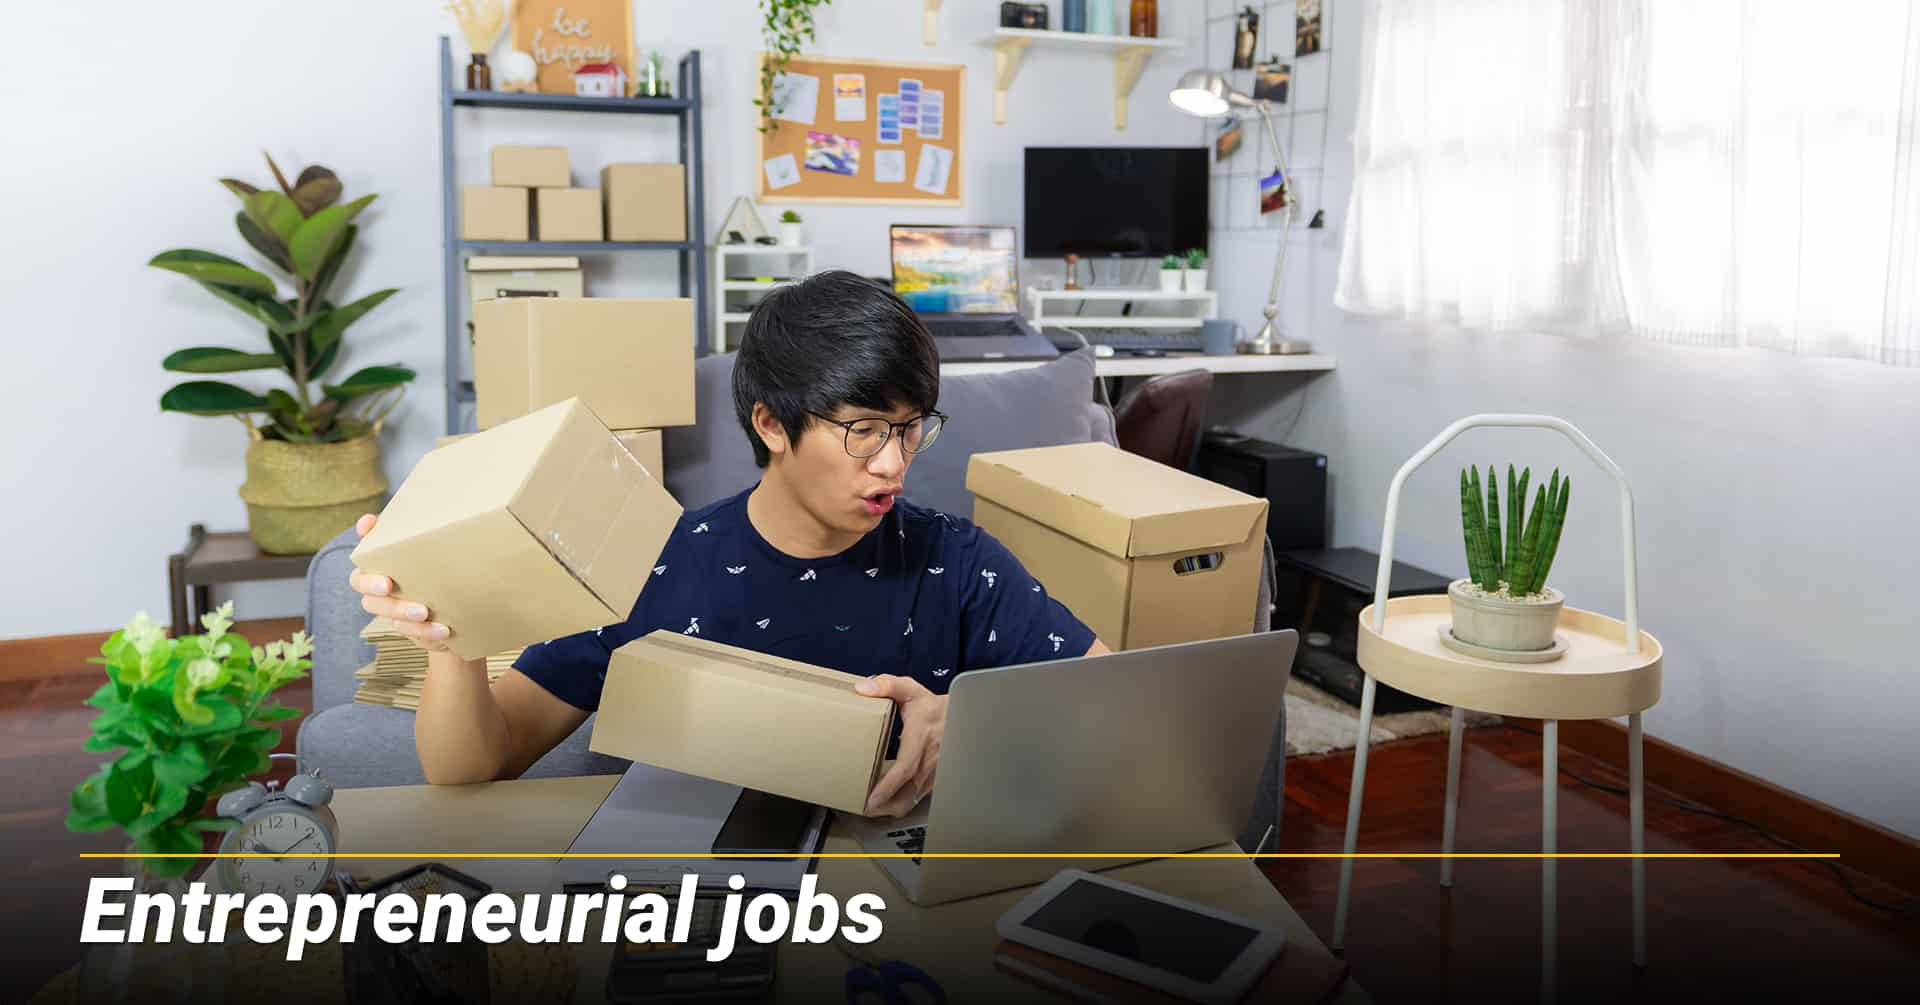 Entrepreneurial jobs